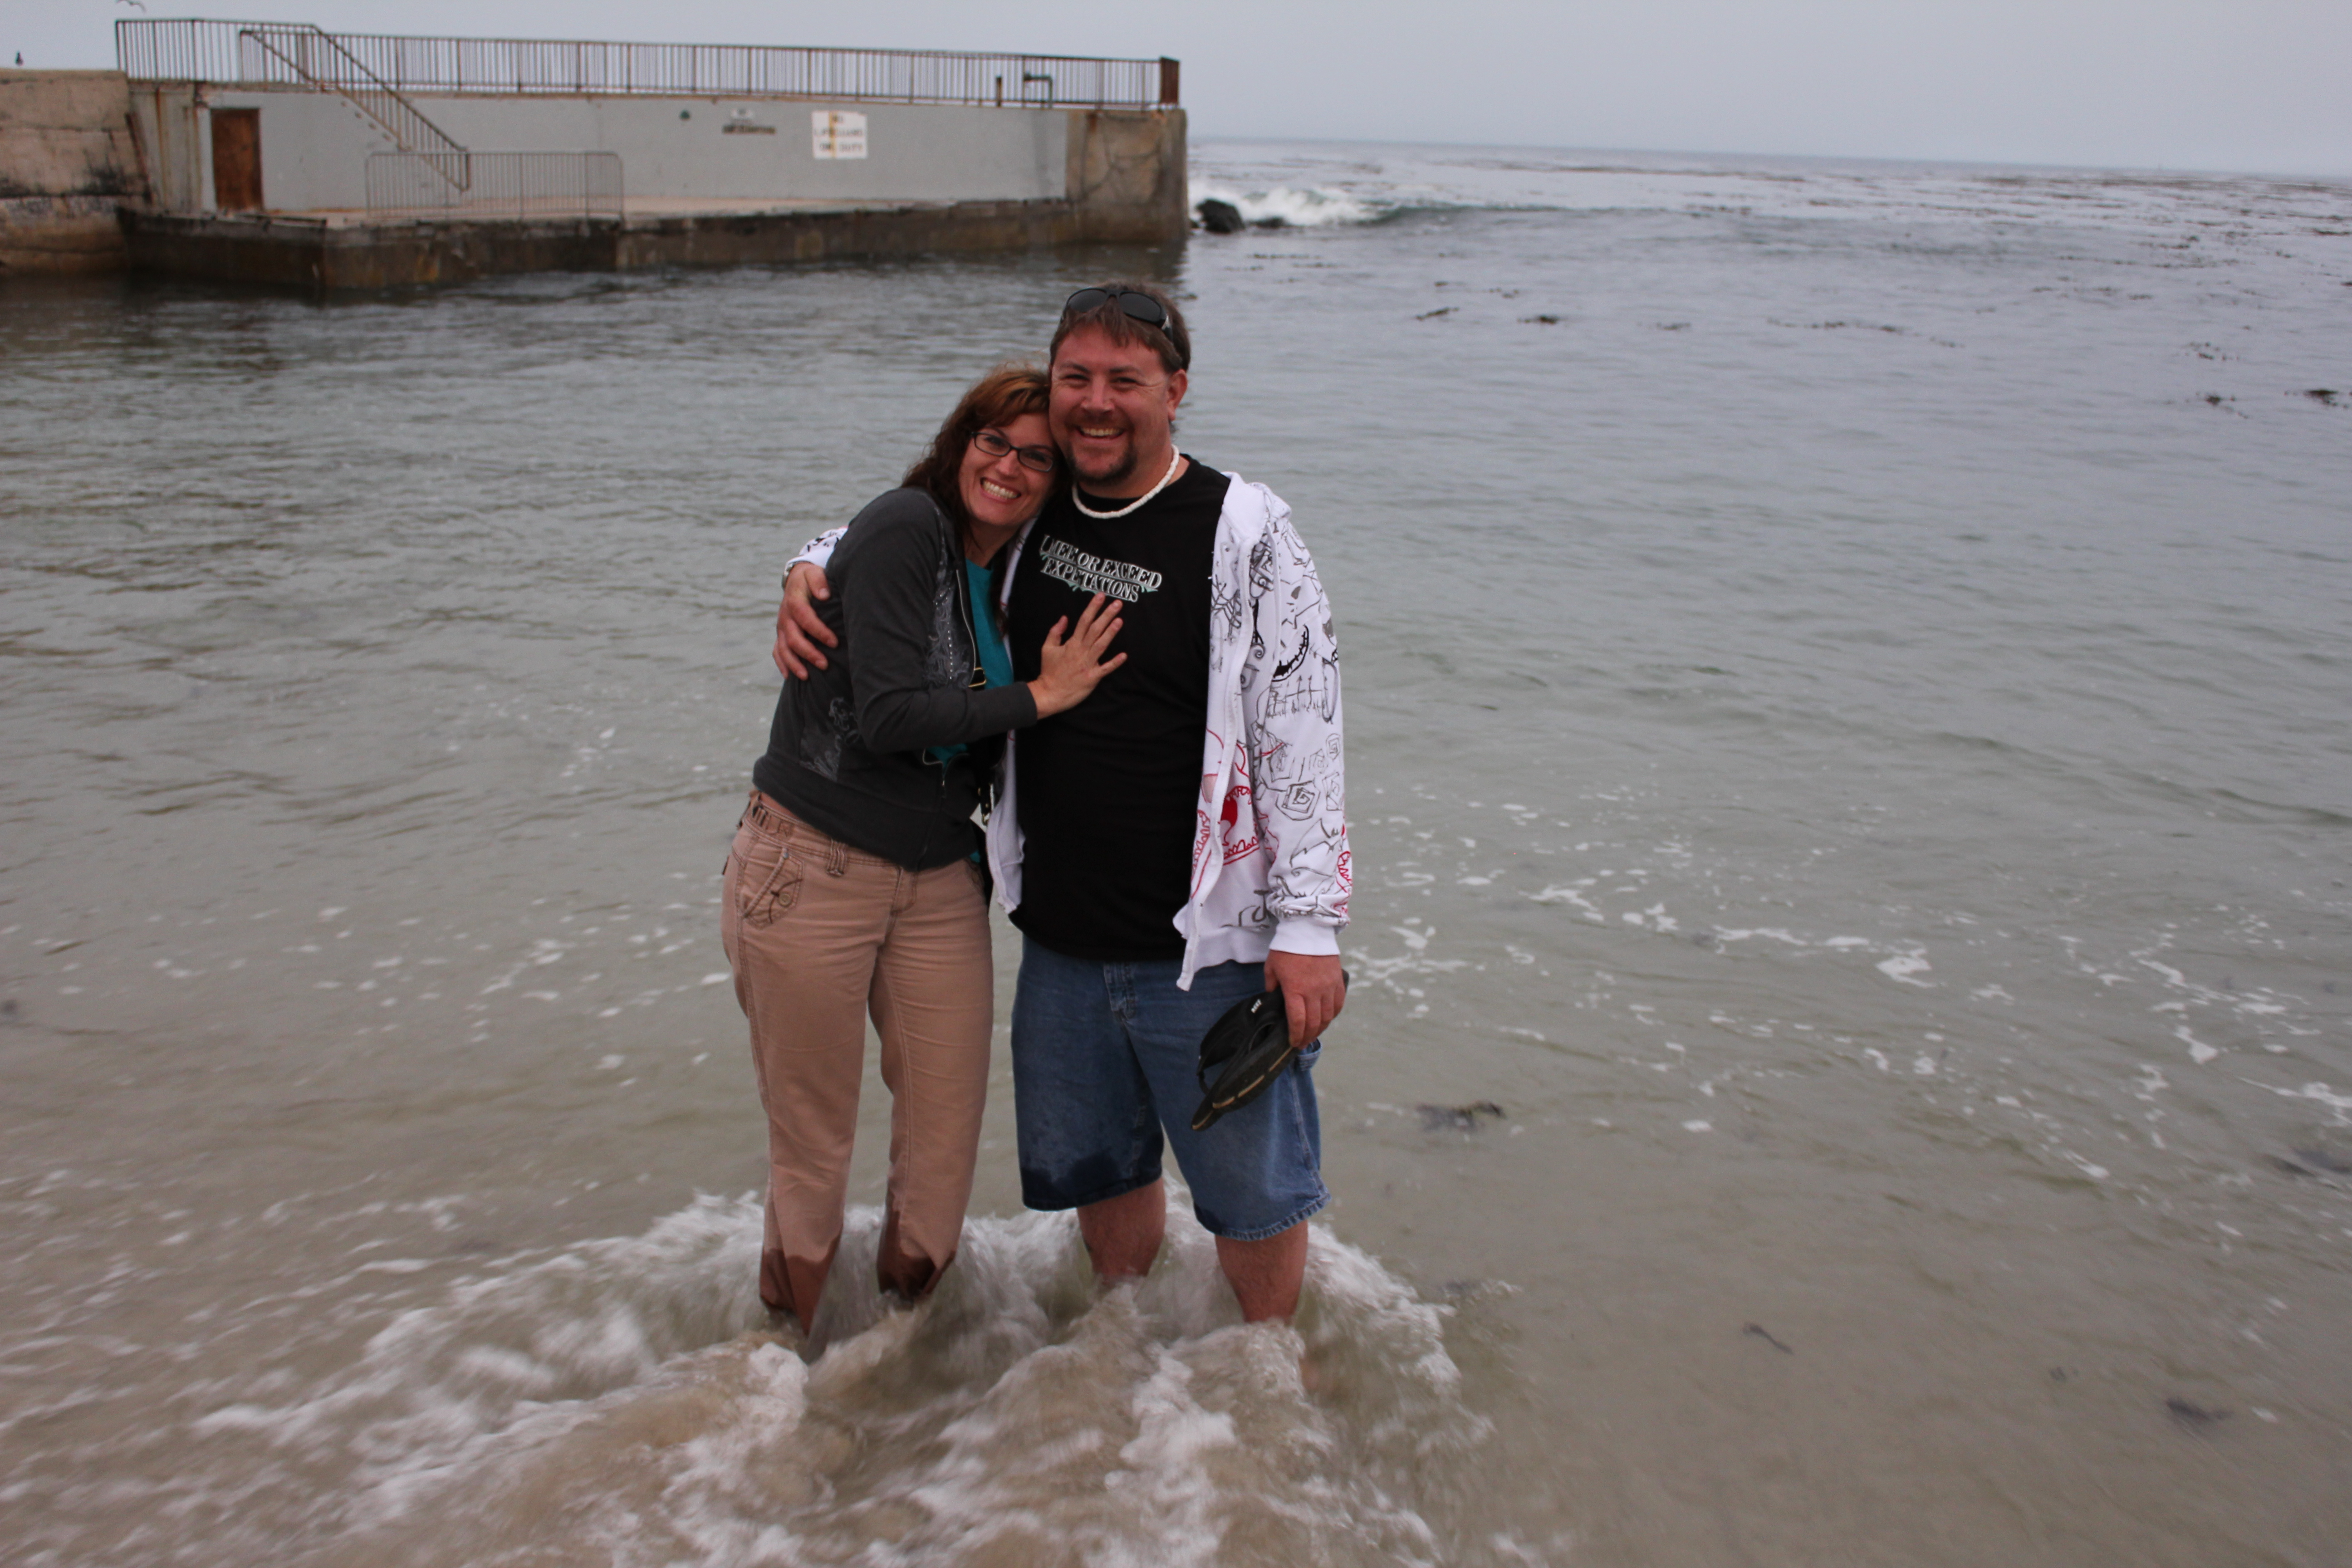 pocono manor singles dating site Love this place we come here every year and will be back next year too each year we have an absolute great time with different memories made each year.